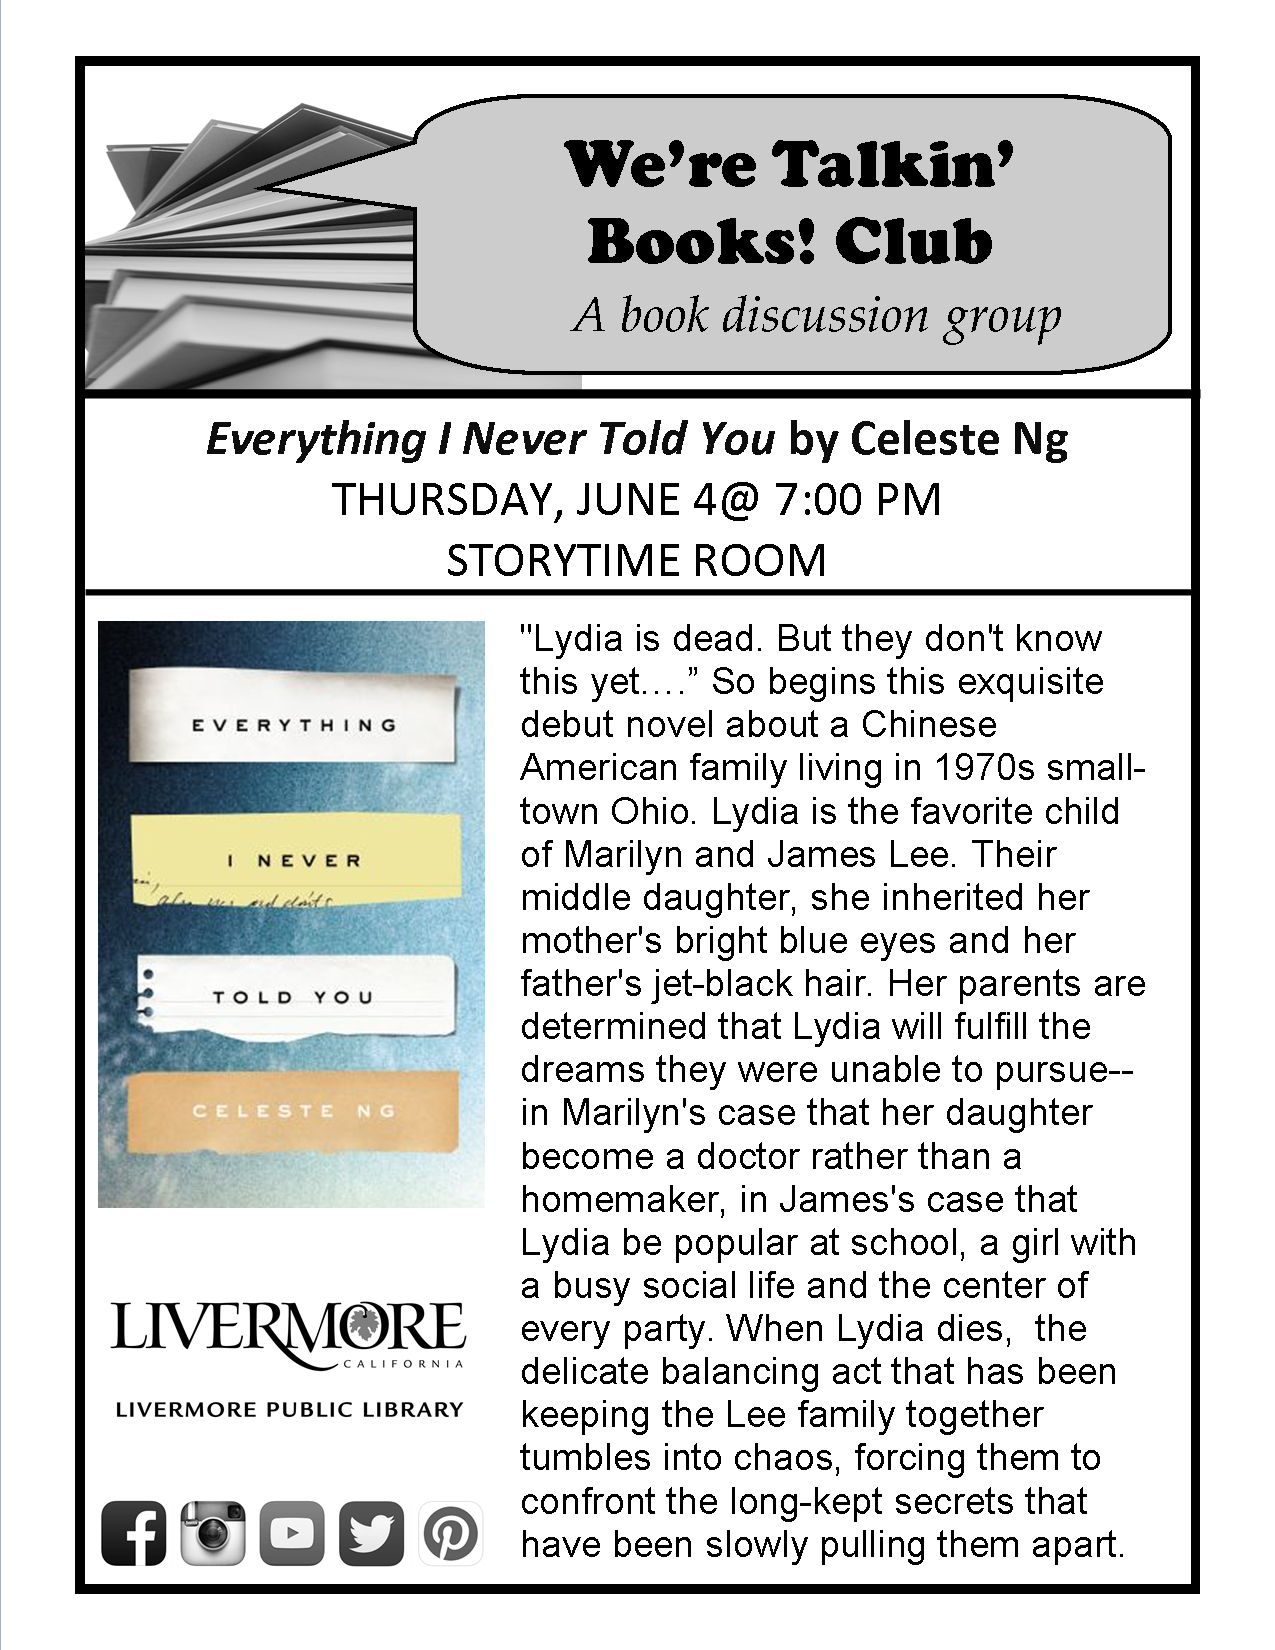 "We're Talkin' Books! Club: ""Everything I Never Told You"" by Celeste Ng. Thursday, June 4, 2015. 7:00 PM - 9:00 PM. Civic Center Library. #livermore #livermorepubliclibrary #LivLibrary"